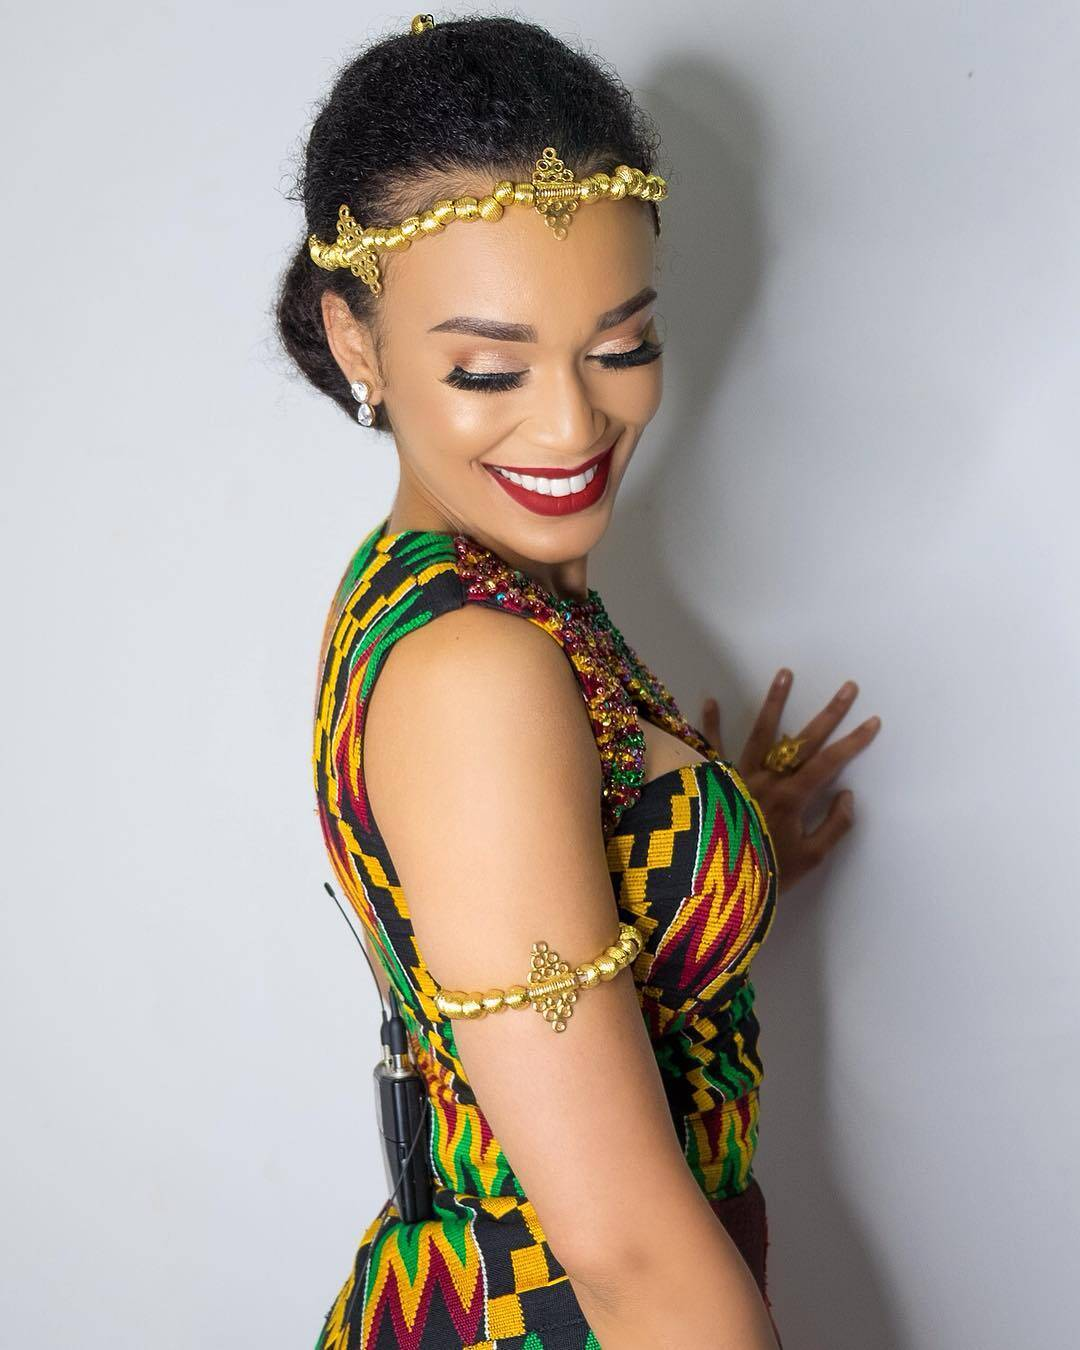 Pearl Thusi in Kente dress and beaded accessories